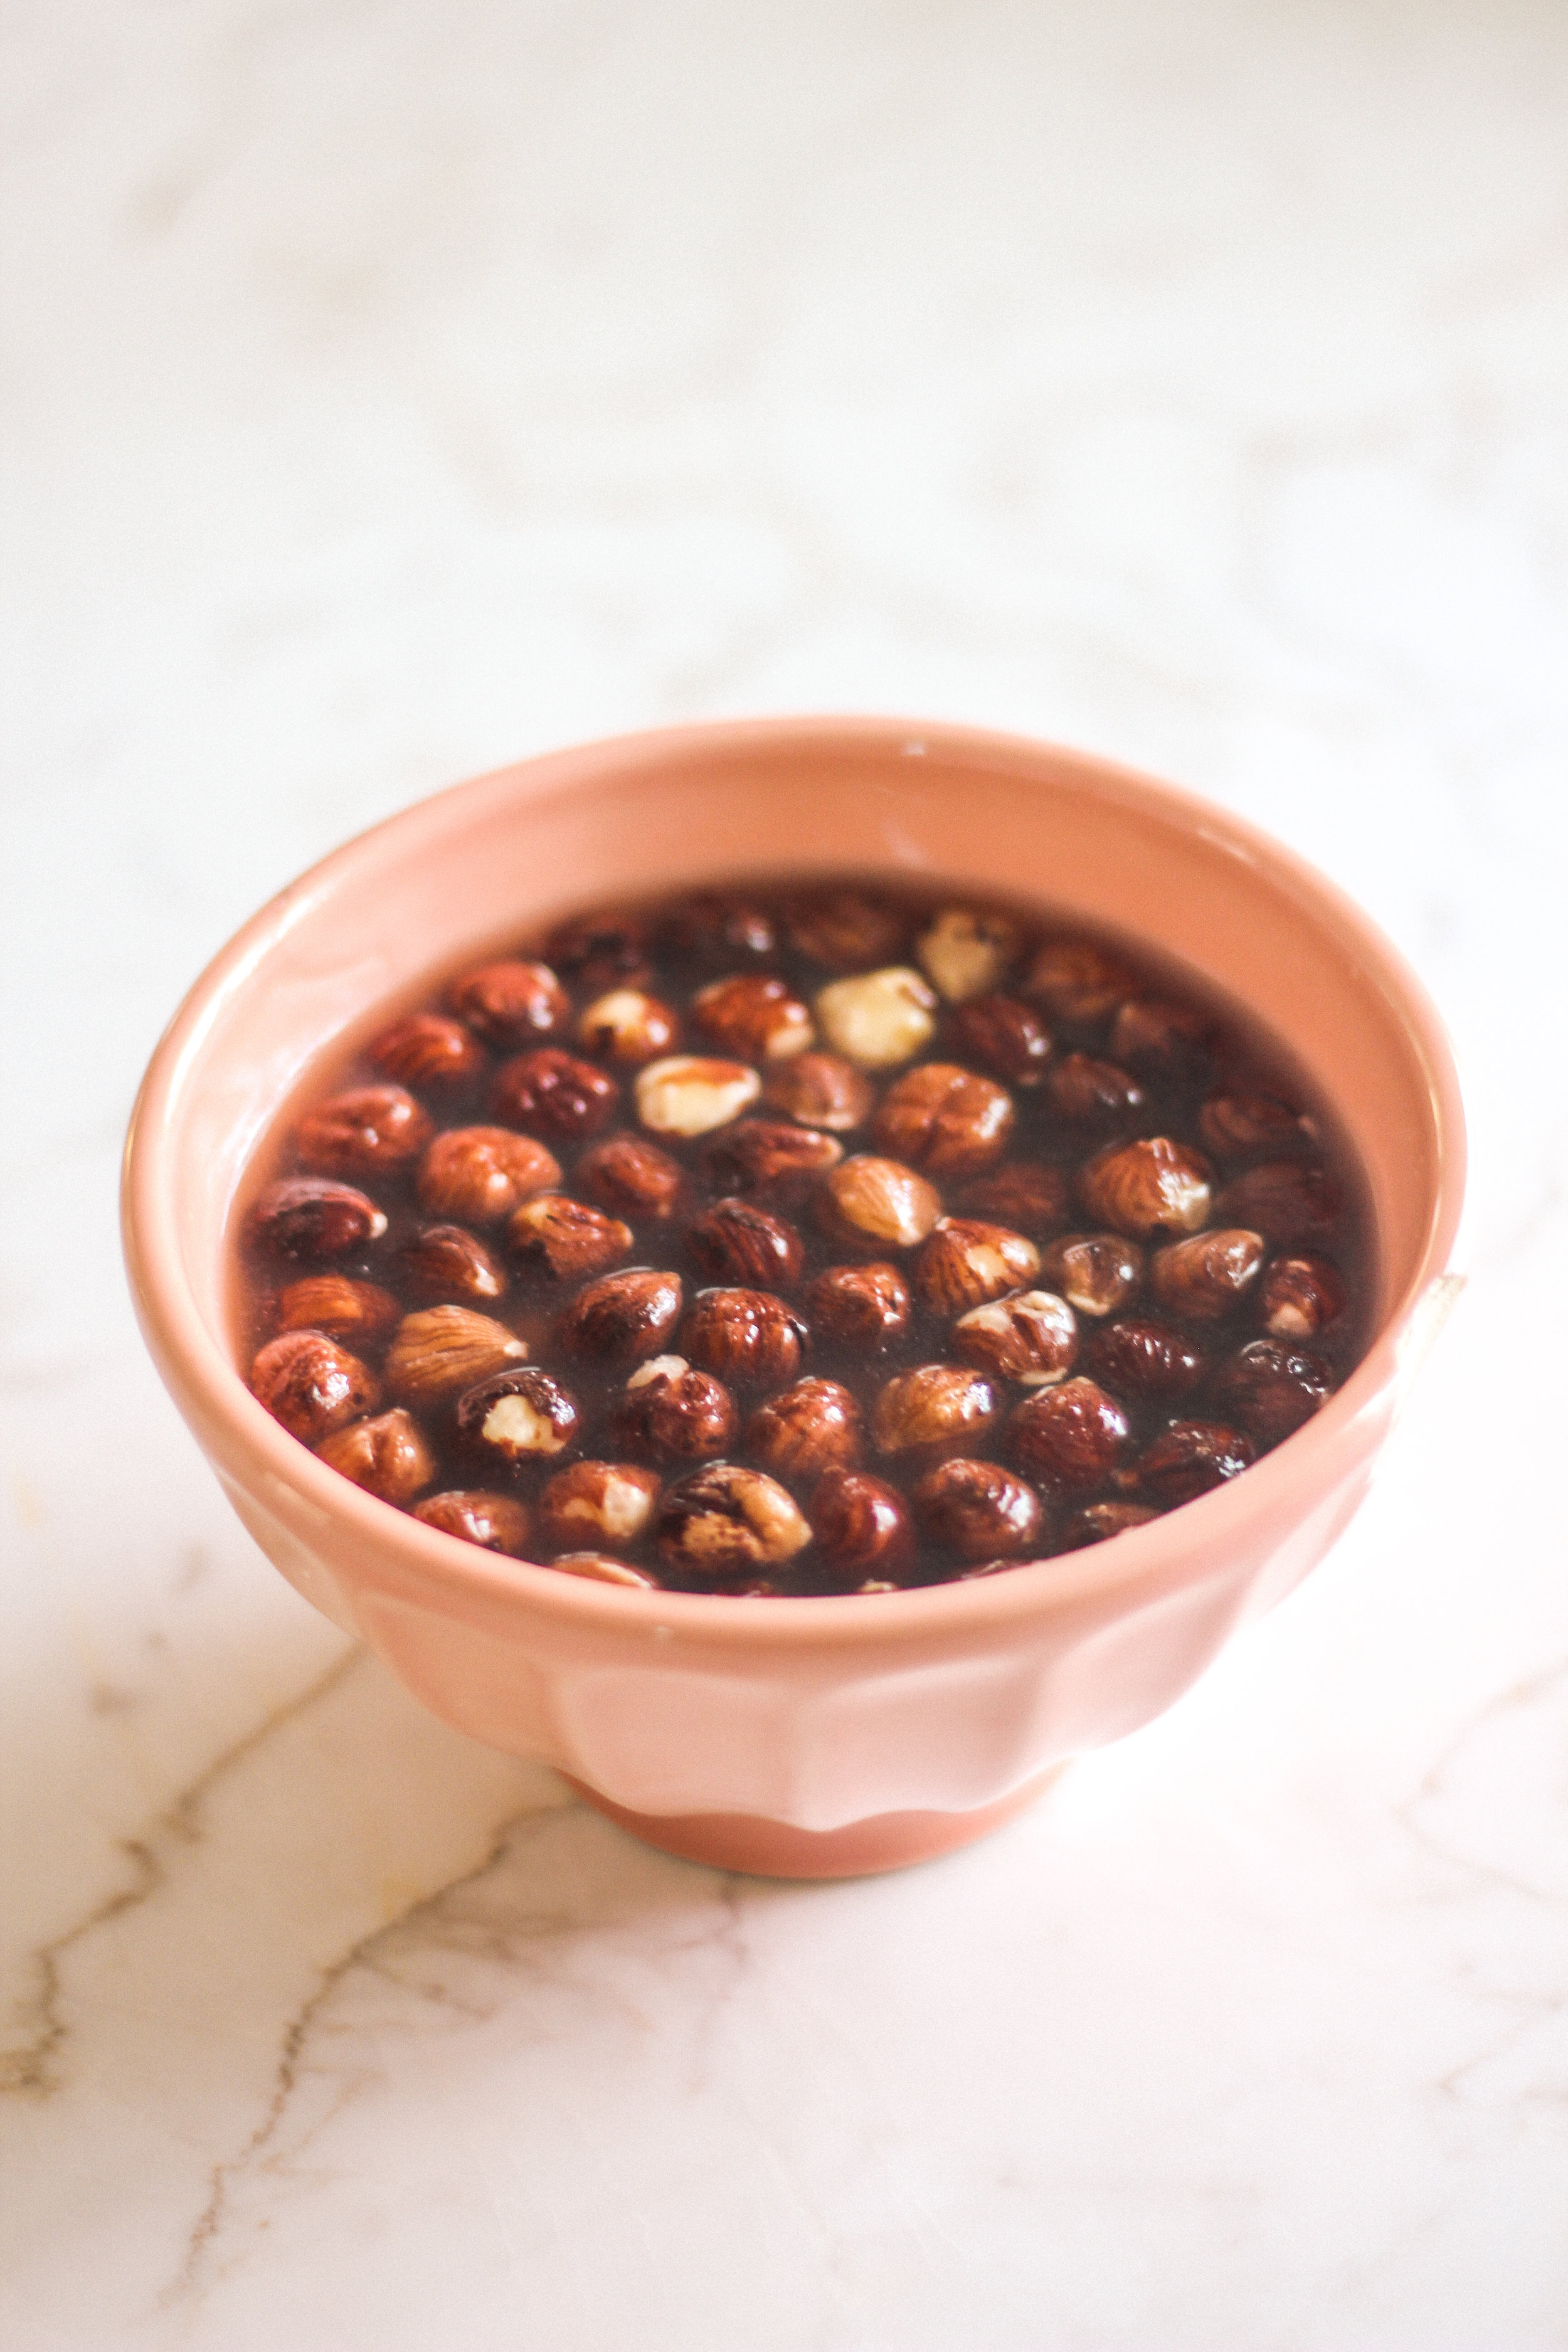 Nuts and seeds should always be rinsed well after soaking, and the soaking water should always be discarded.